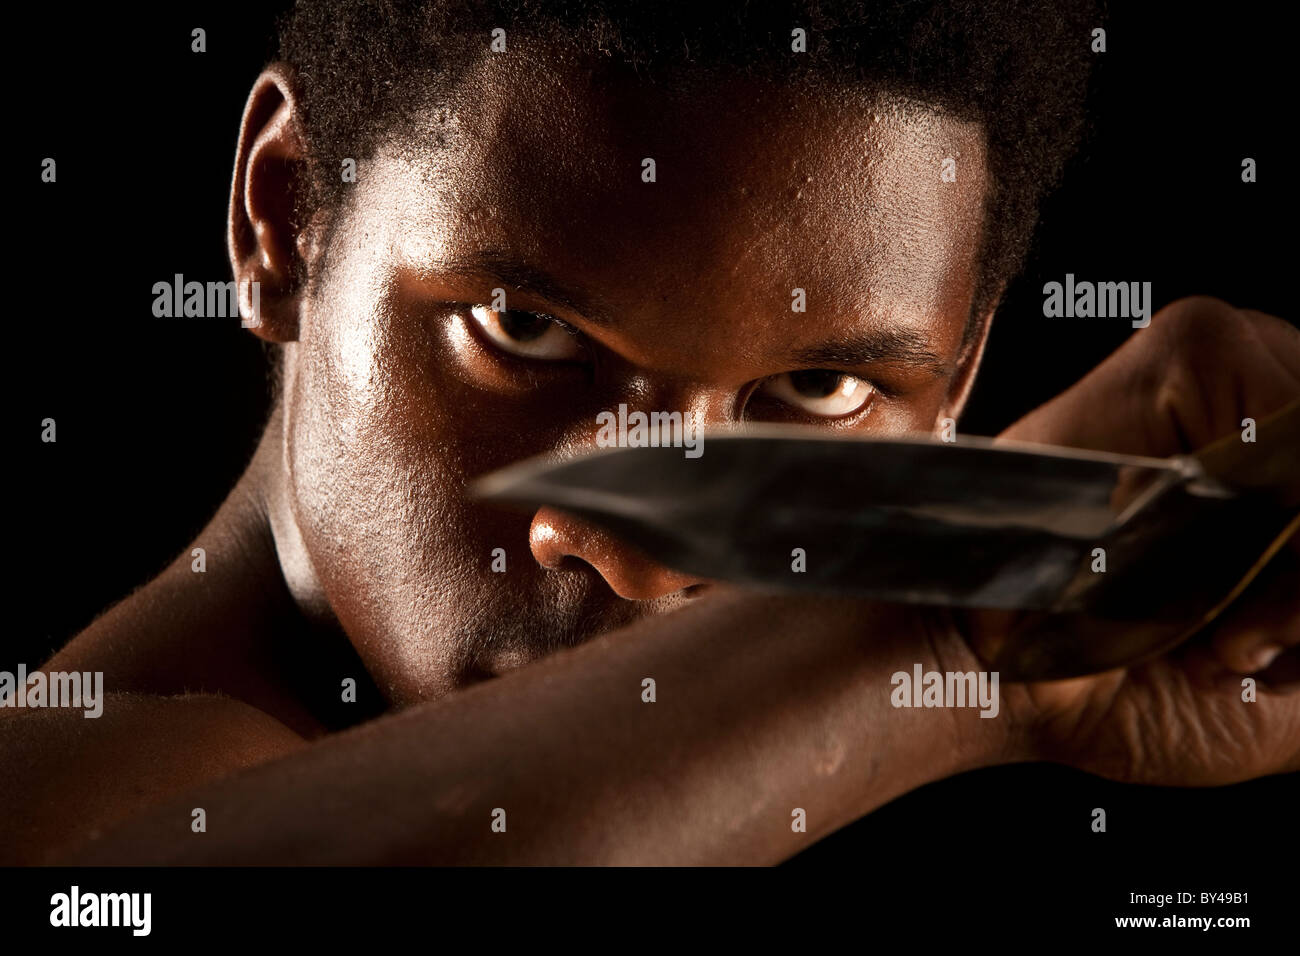 Young black male model posing with a knife